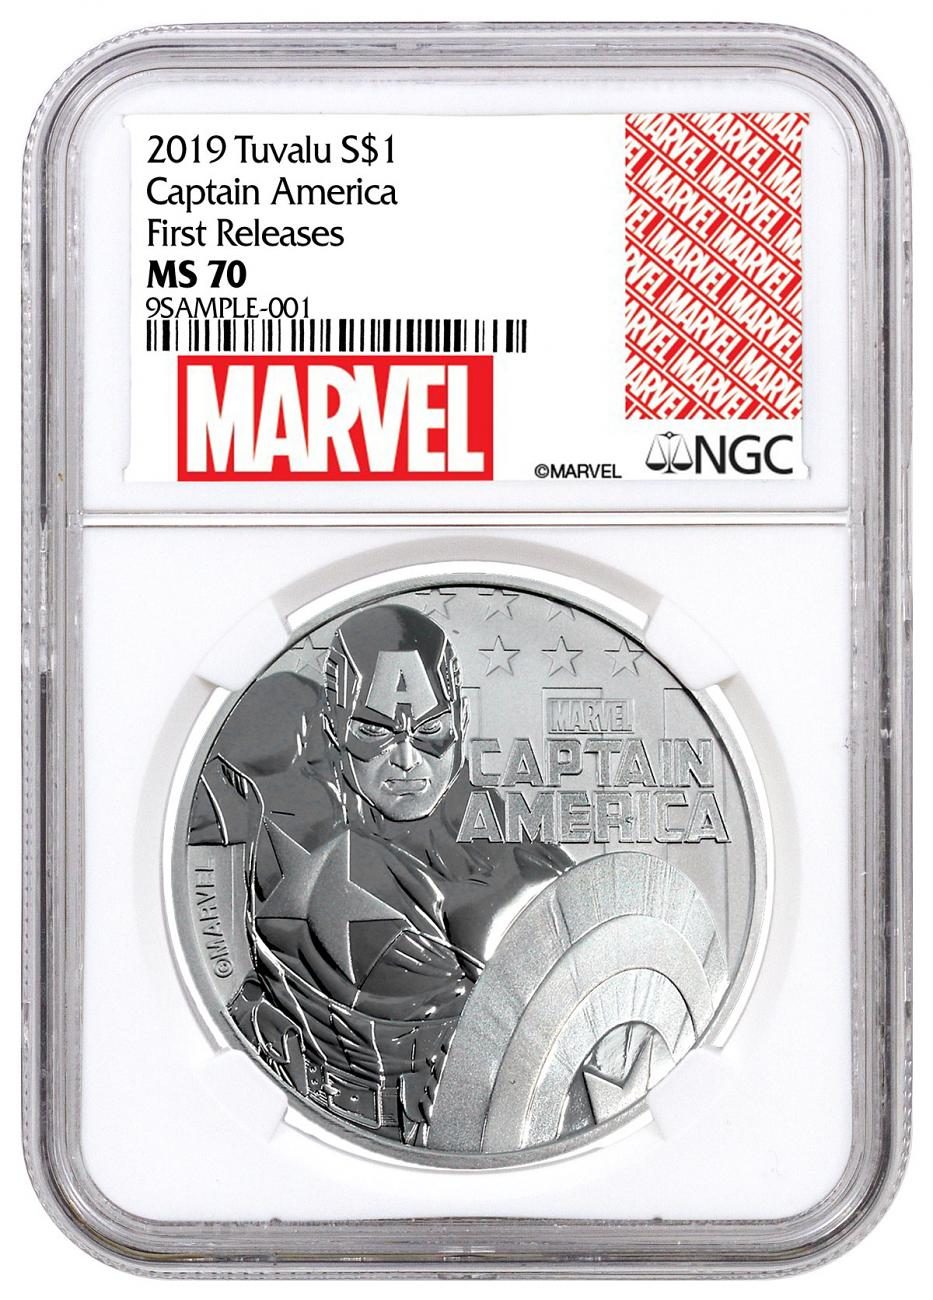 2019 Tuvalu Captain America 1 oz Silver Marvel Series $1 Coin NGC MS70 FR Exclusive Marvel Label